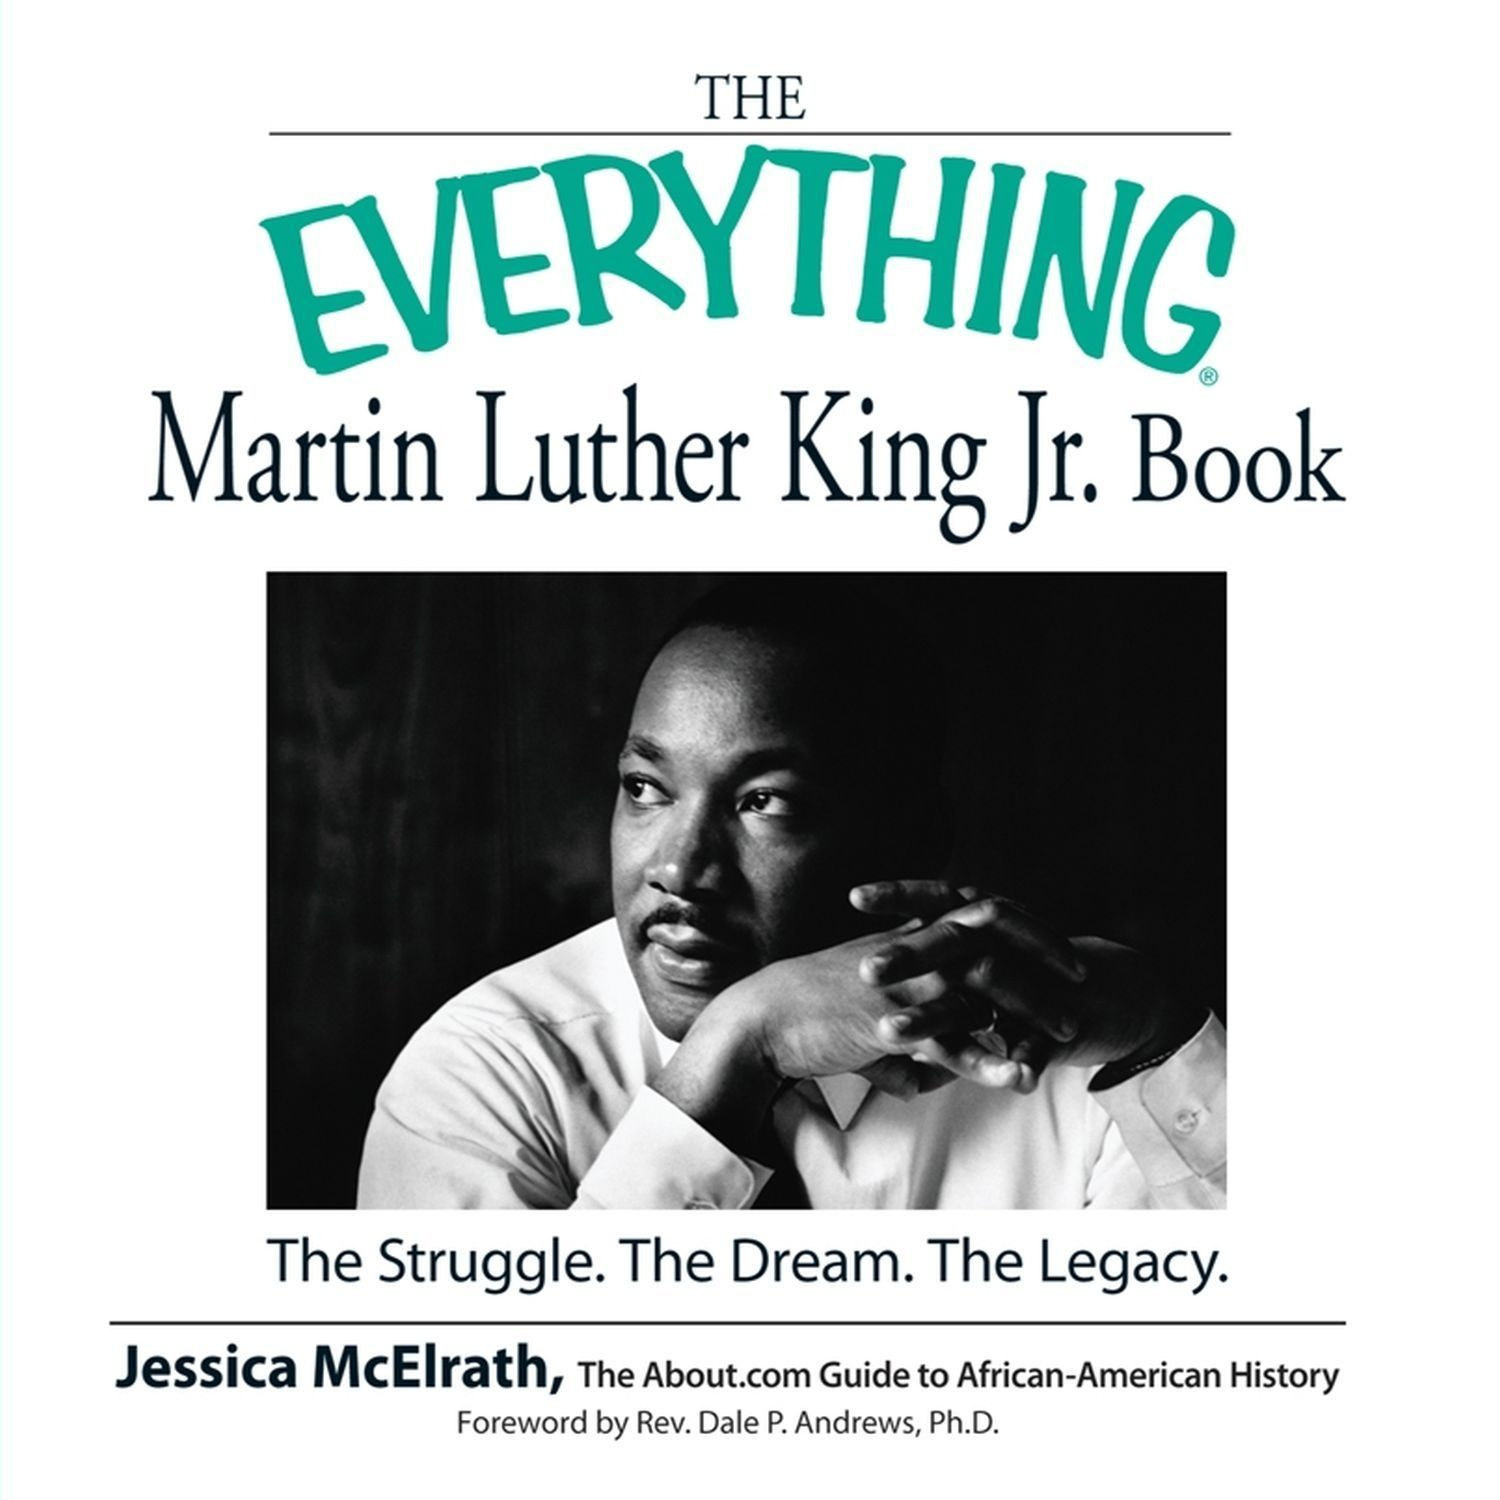 the impact of martin luther king jrs rights struggles in america The martin luther king students will determine the impact of the civil rights compare present-day realities to past struggles for justice in america and.